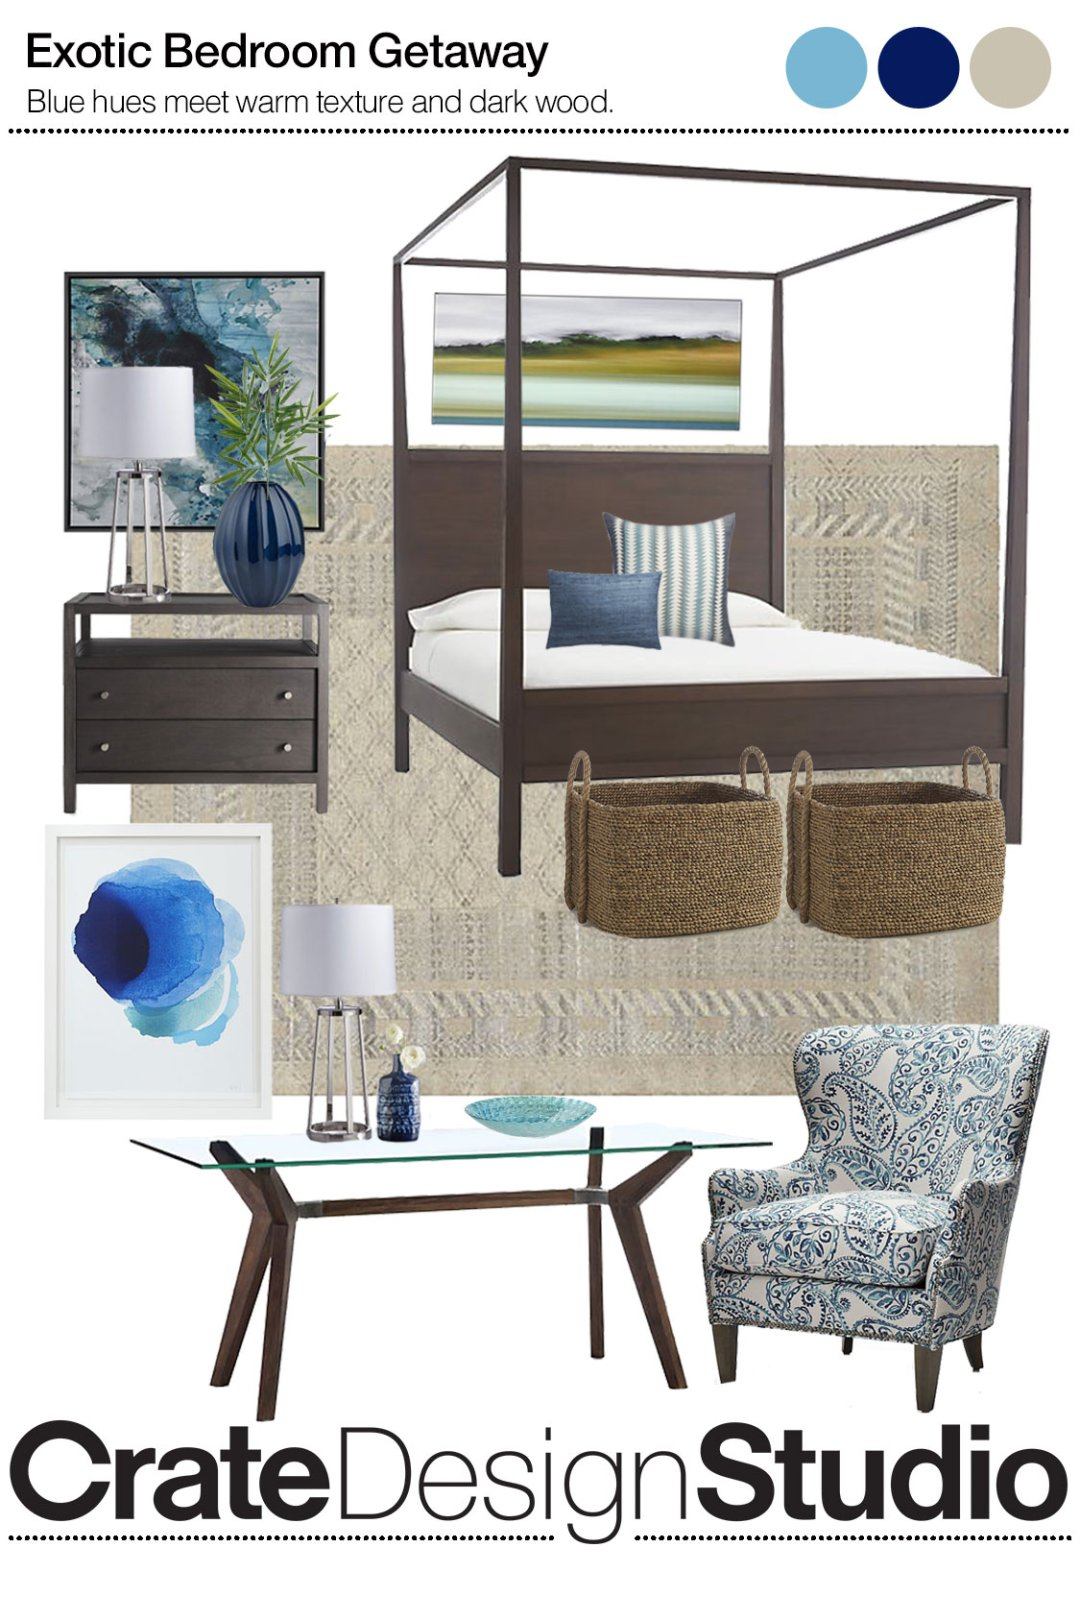 Curated image with keane wenge queen canopy bed brielle nailhead wingback chair strut bourbon